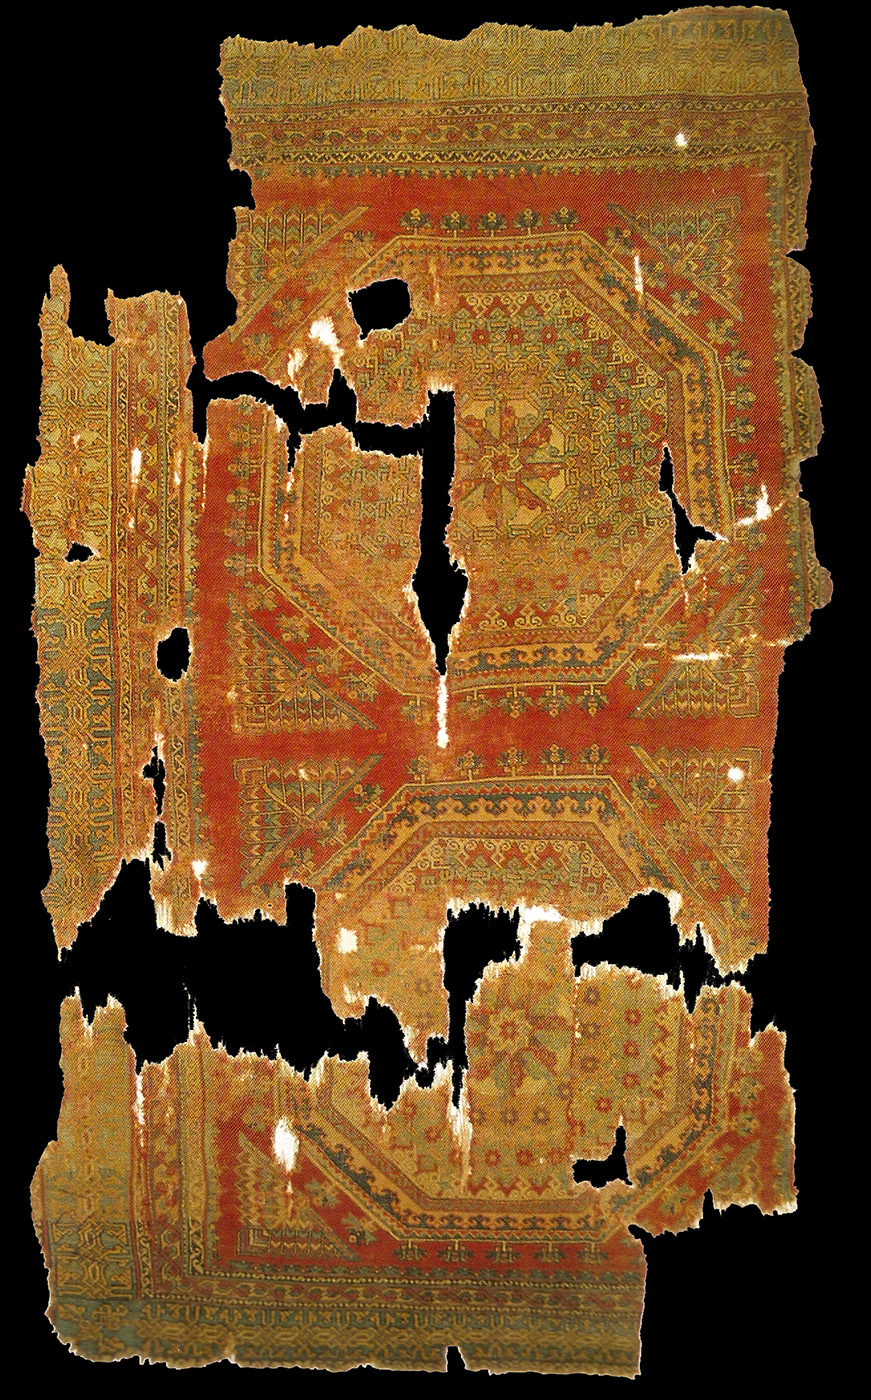 14th-15th centuries, Crivelli patterned carpet, Western Anatolia